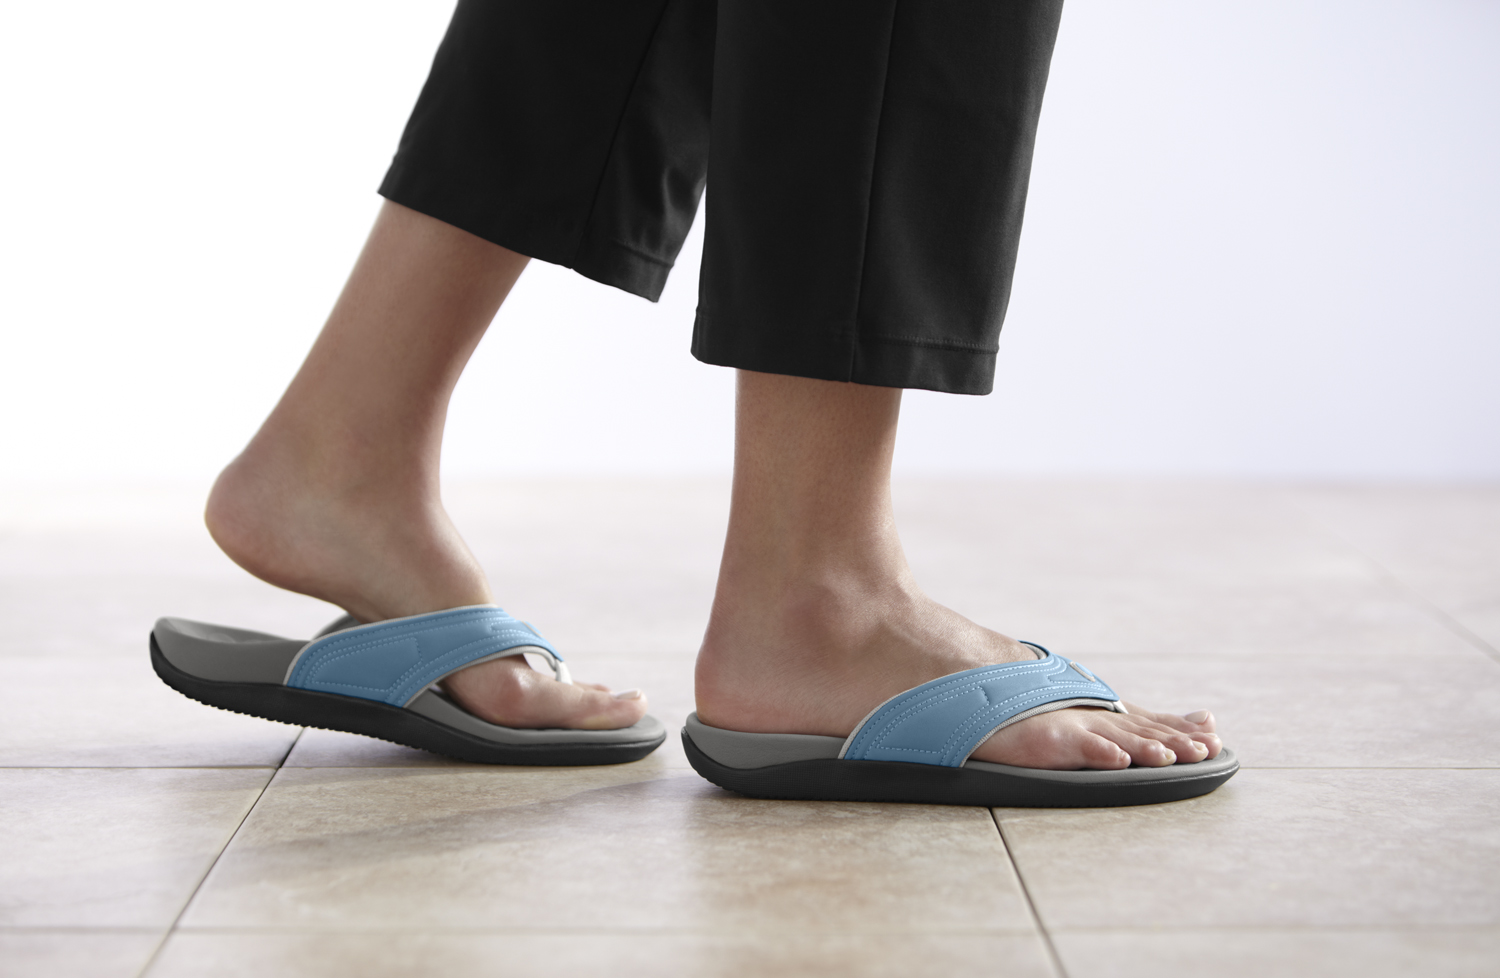 c72a9a69f Solana Sandals with built-in orthotic support provide relief from common  foot